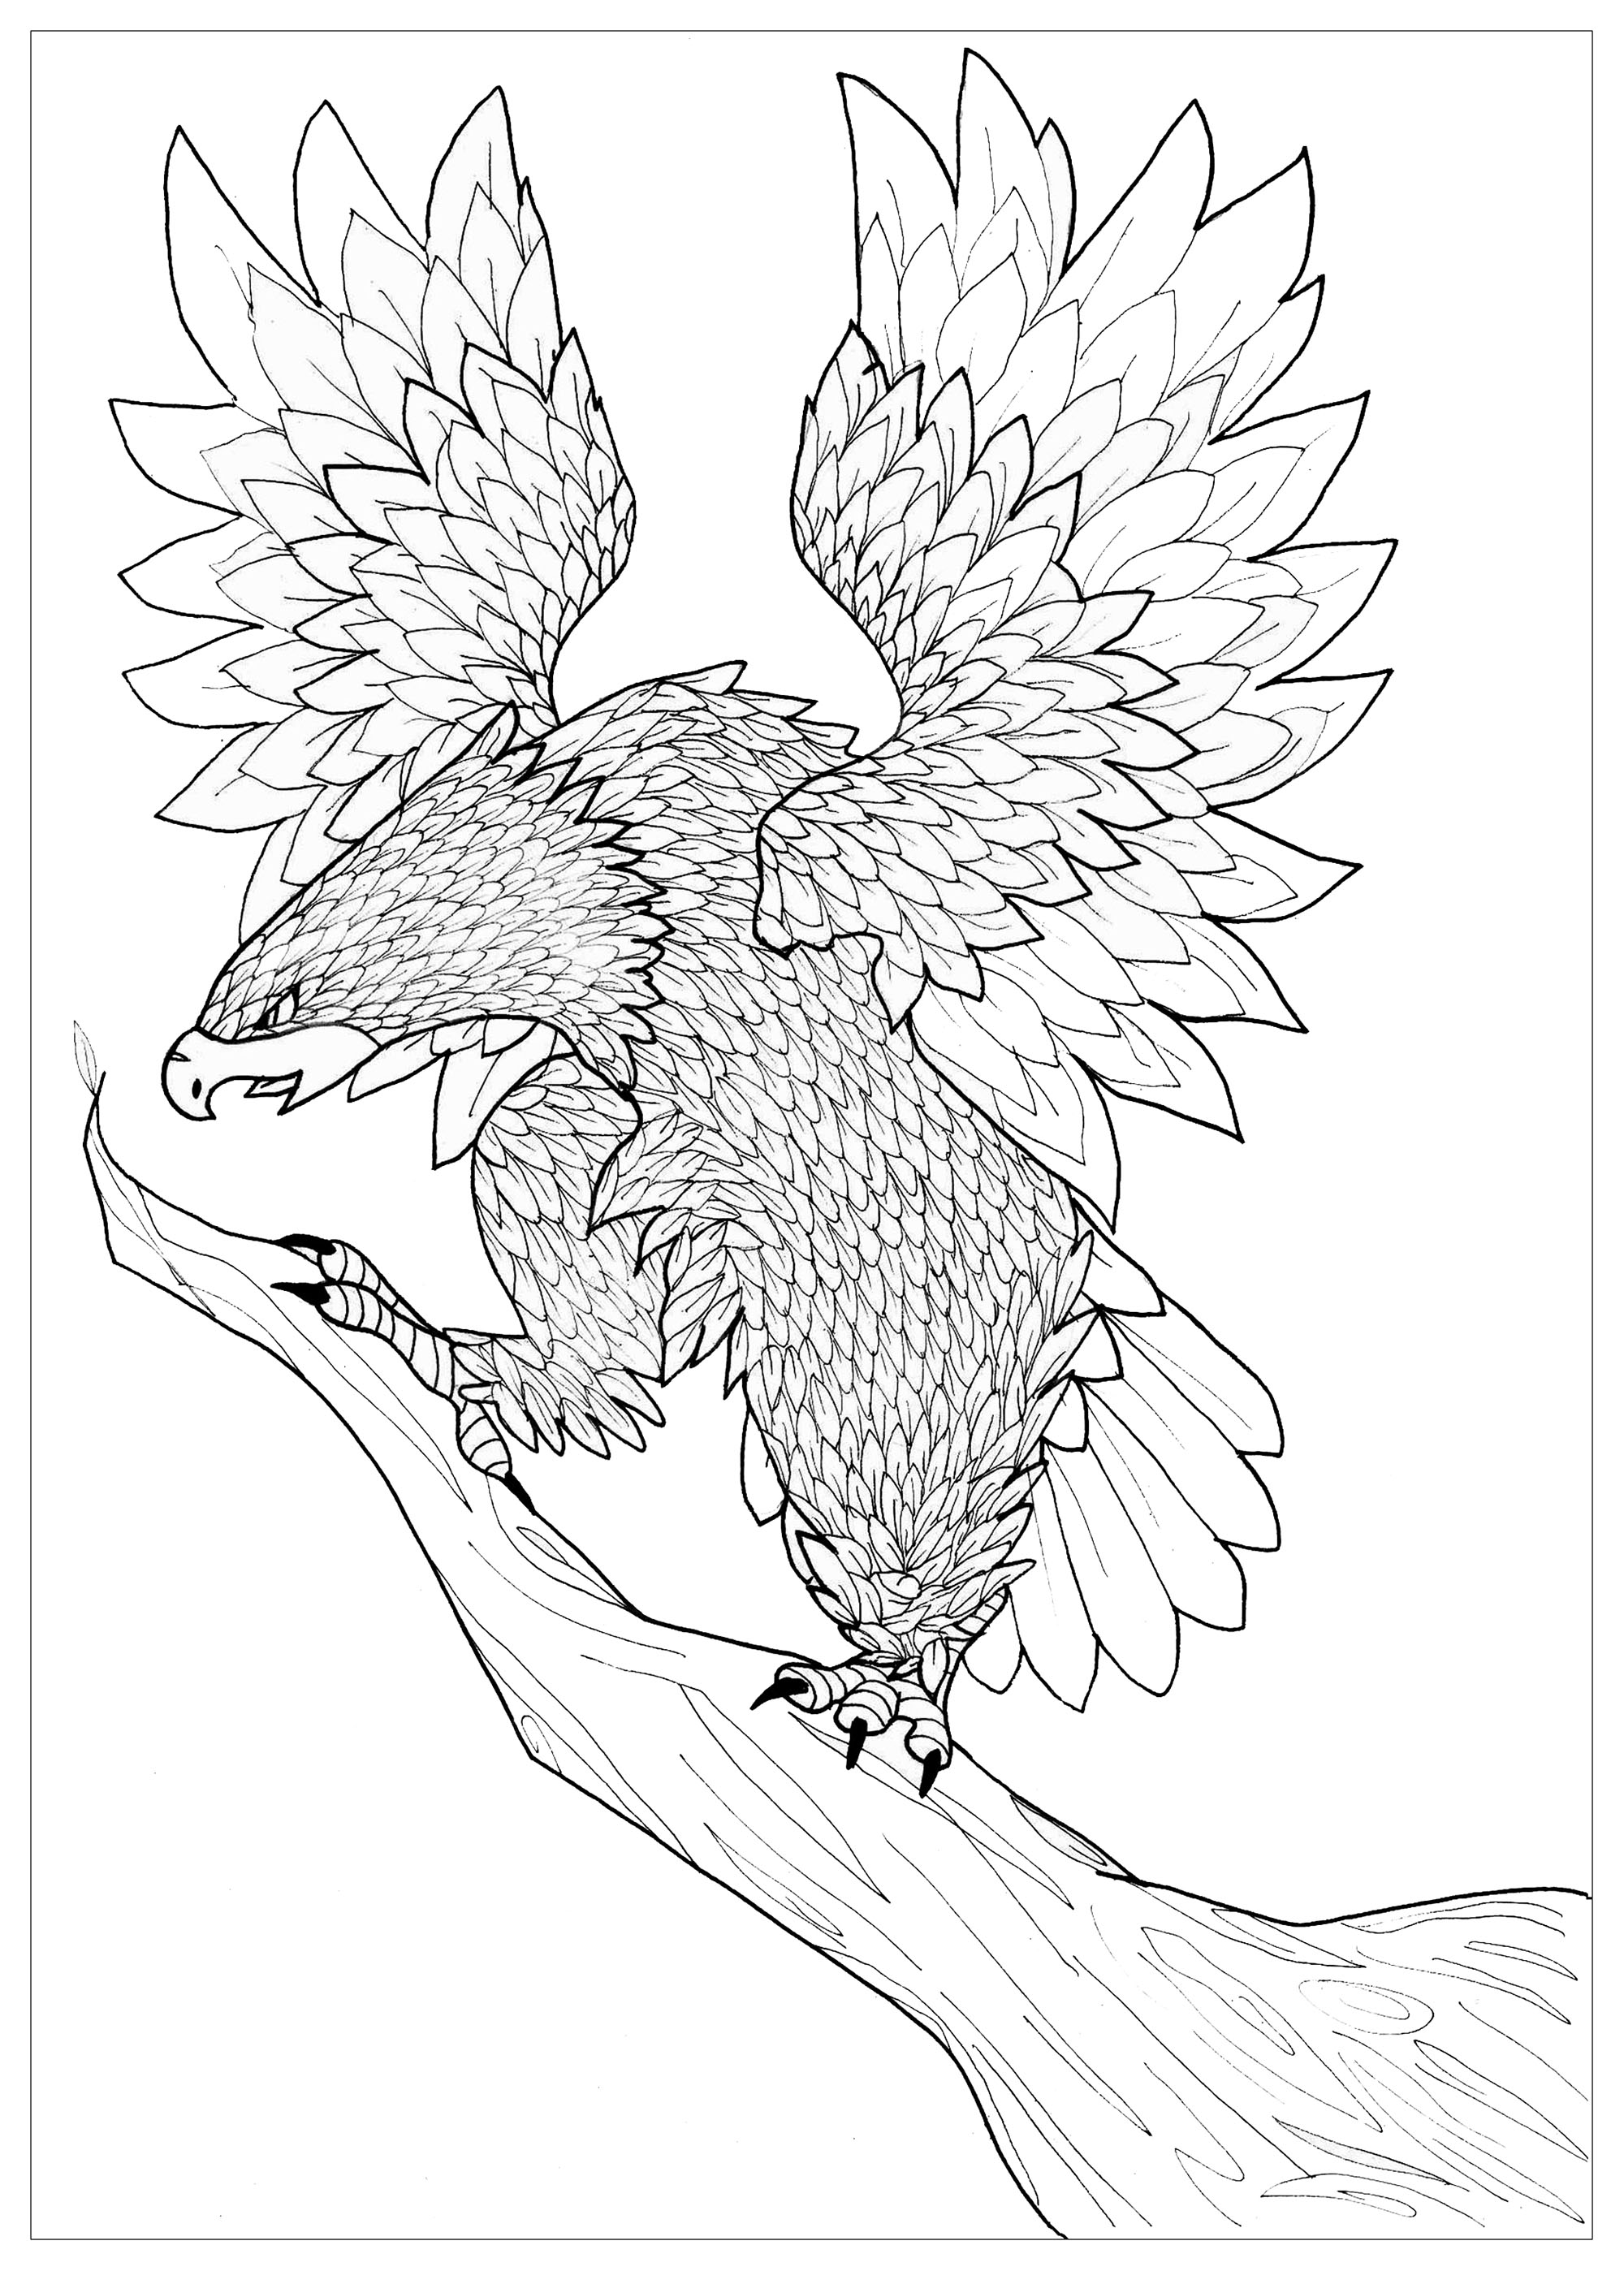 eagle coloring pages flying eagle birds adult coloring pages coloring eagle pages